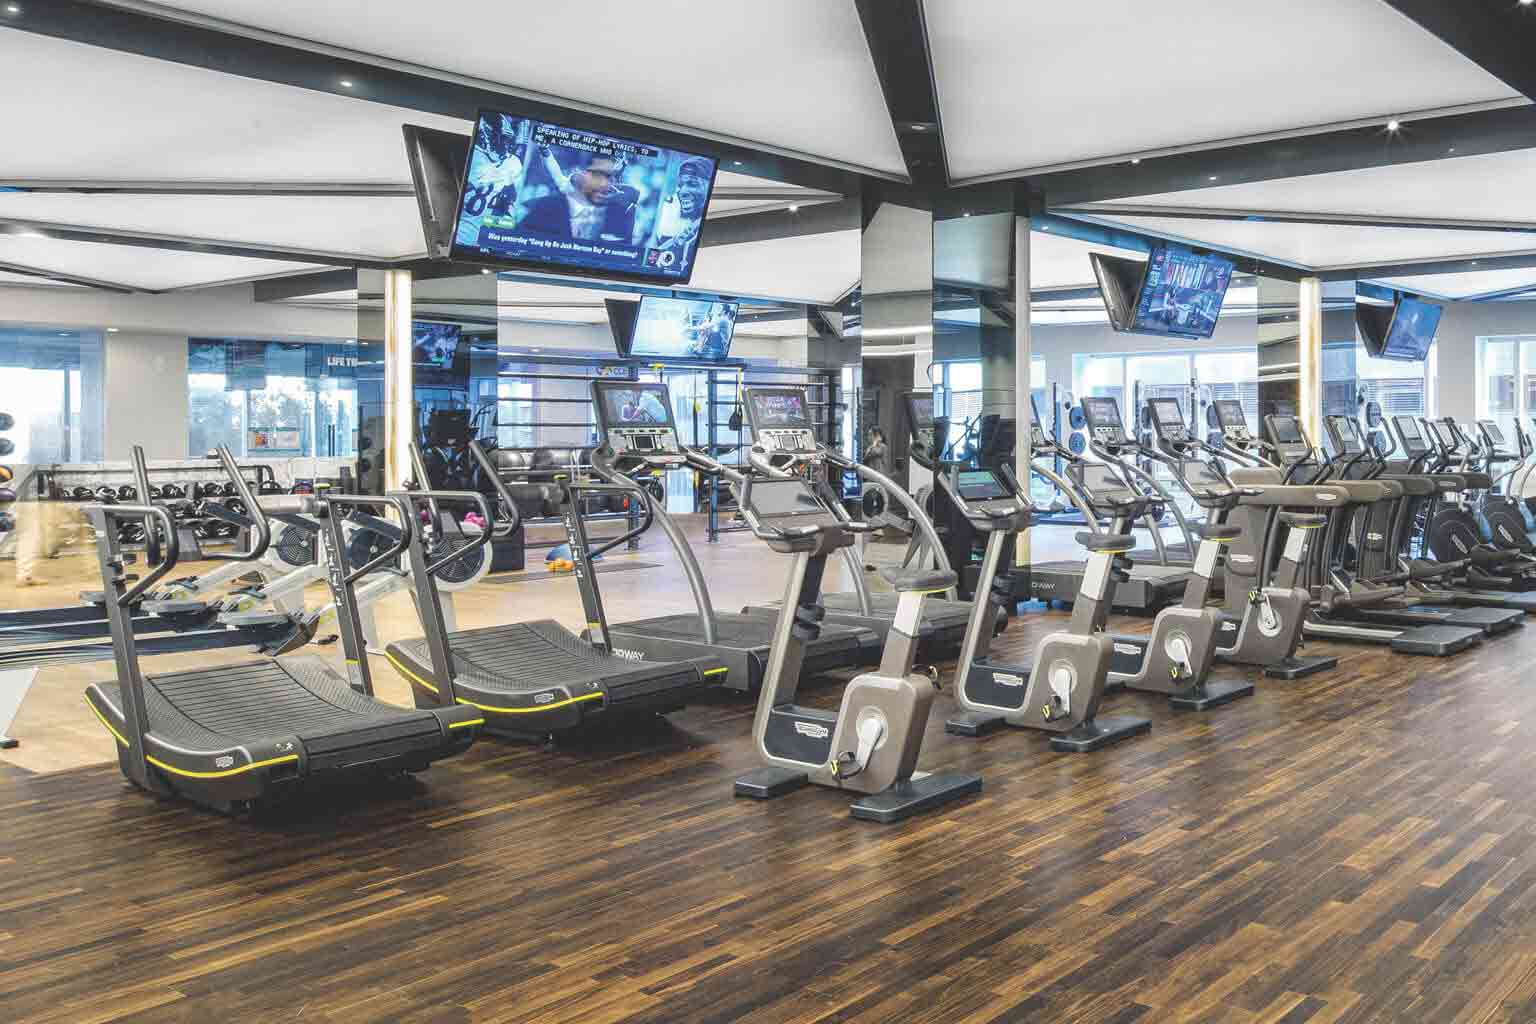 an image depicting life time's wide variety of cardio machines